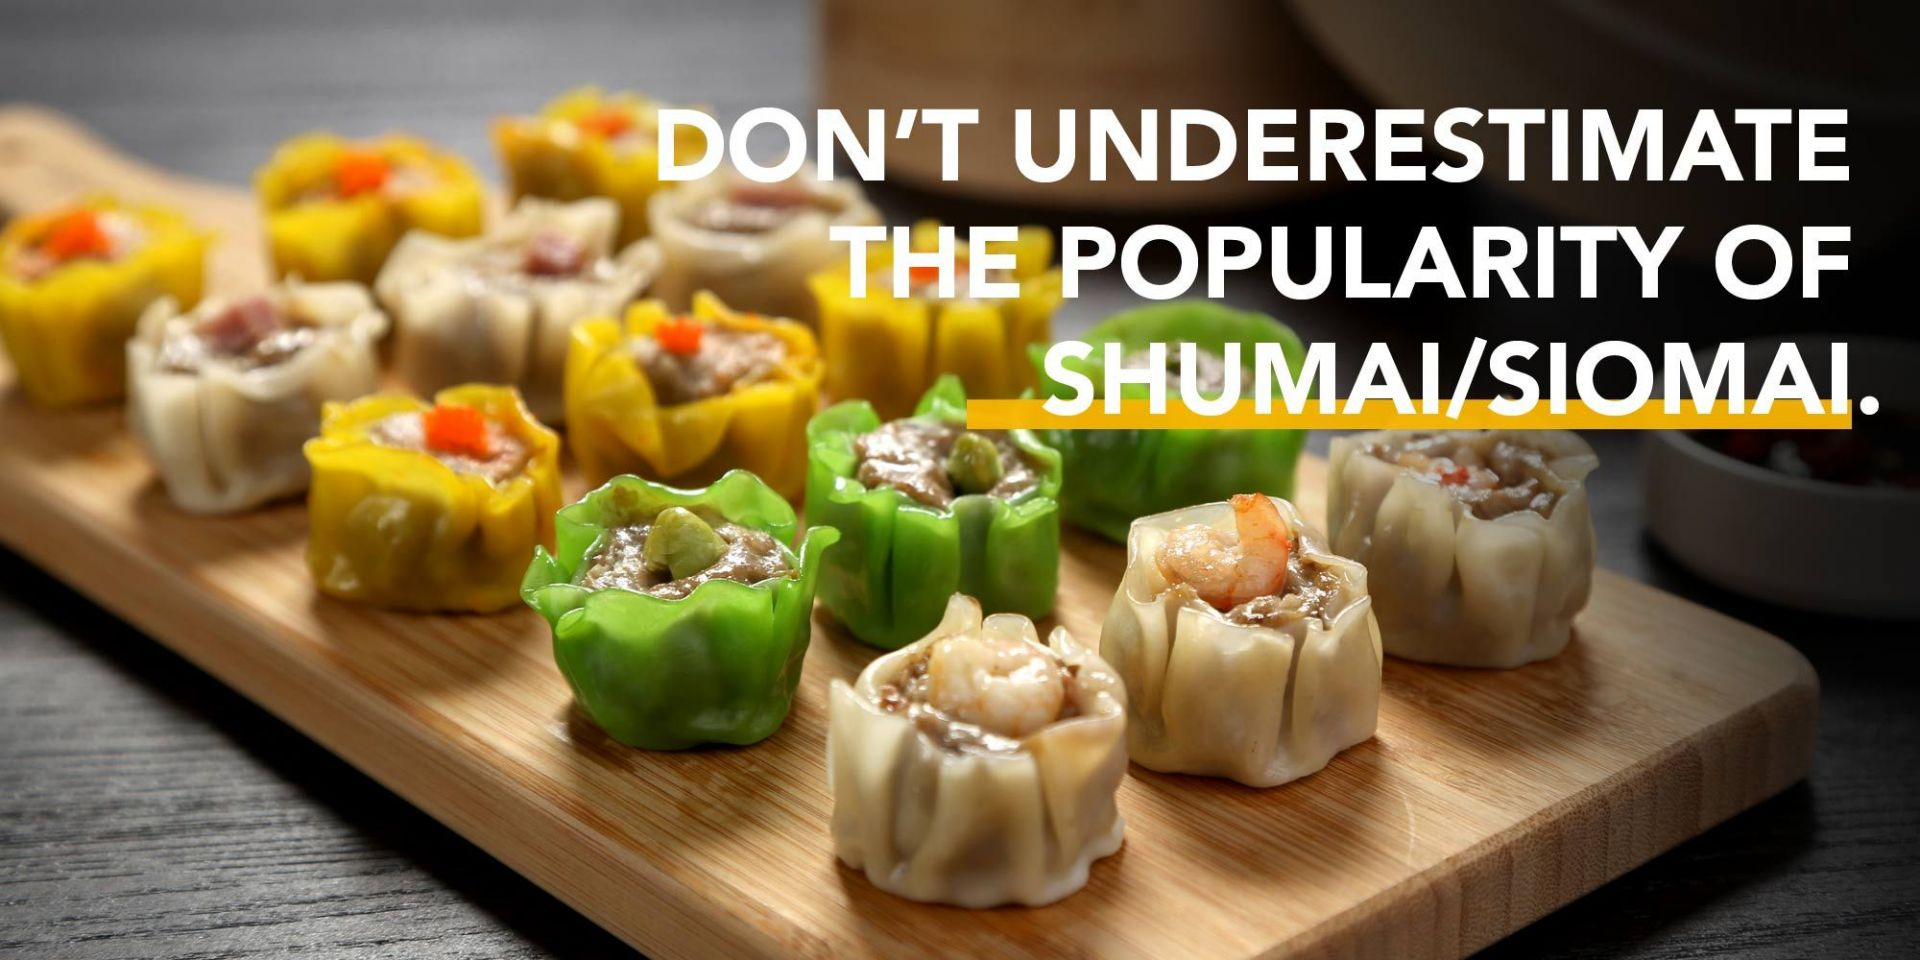 【Food Industry Trends】Don't underestimate the popularity of shumai/siomai.